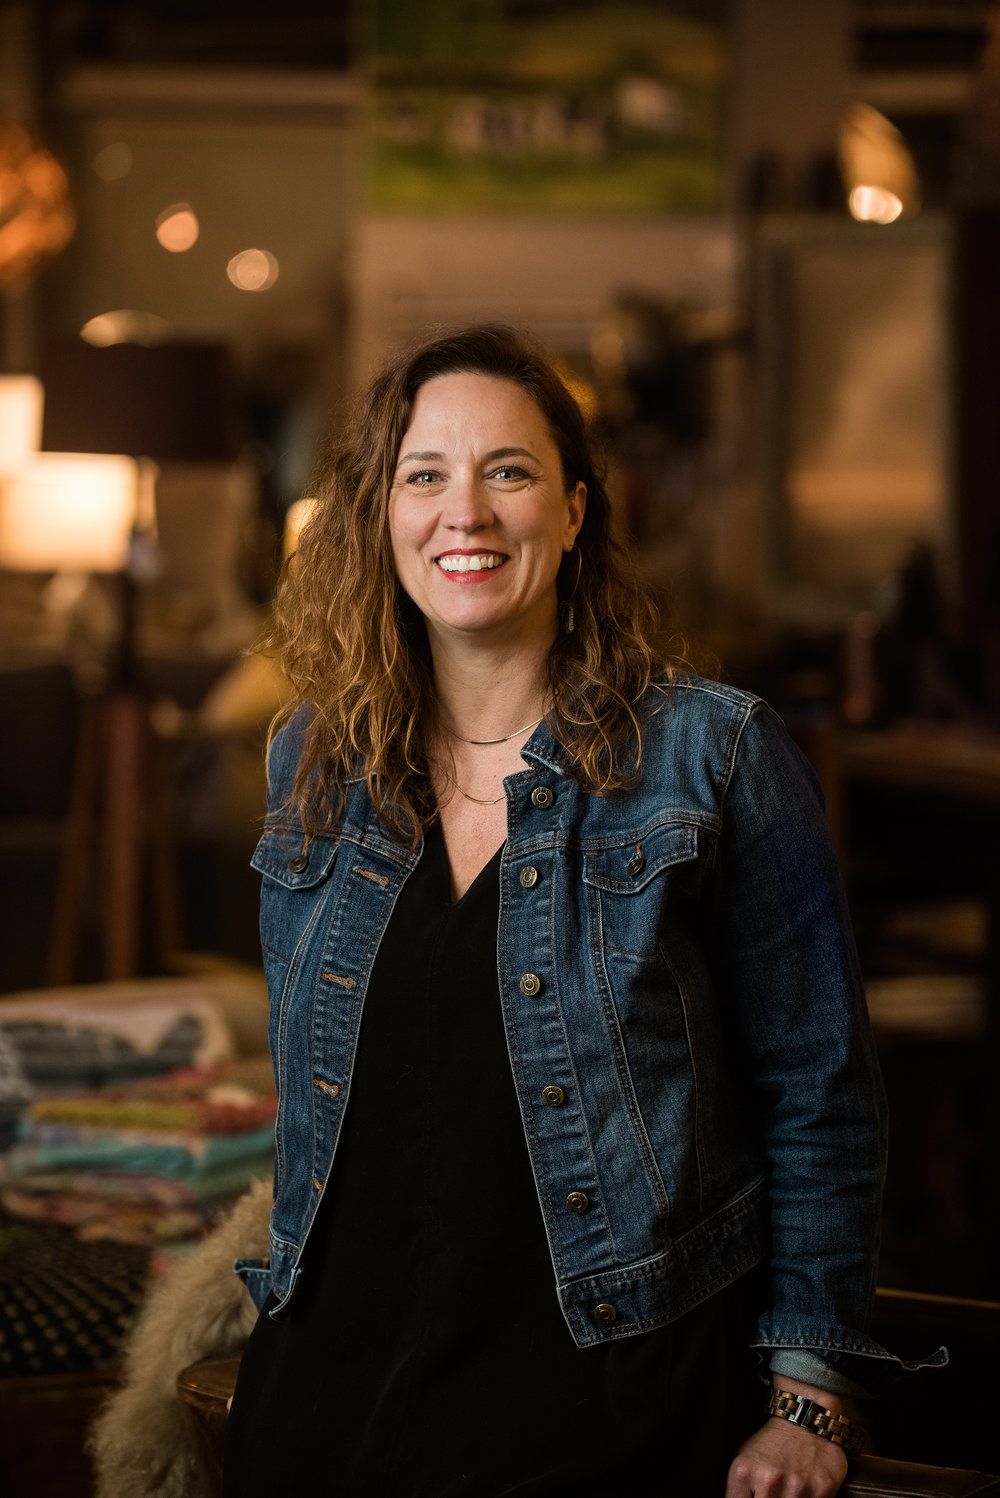 Kim Hubbard is the owner and creative force behind k2Studio. Kim connects on a deep level with homeowners to help fill their space with functional beauty. -